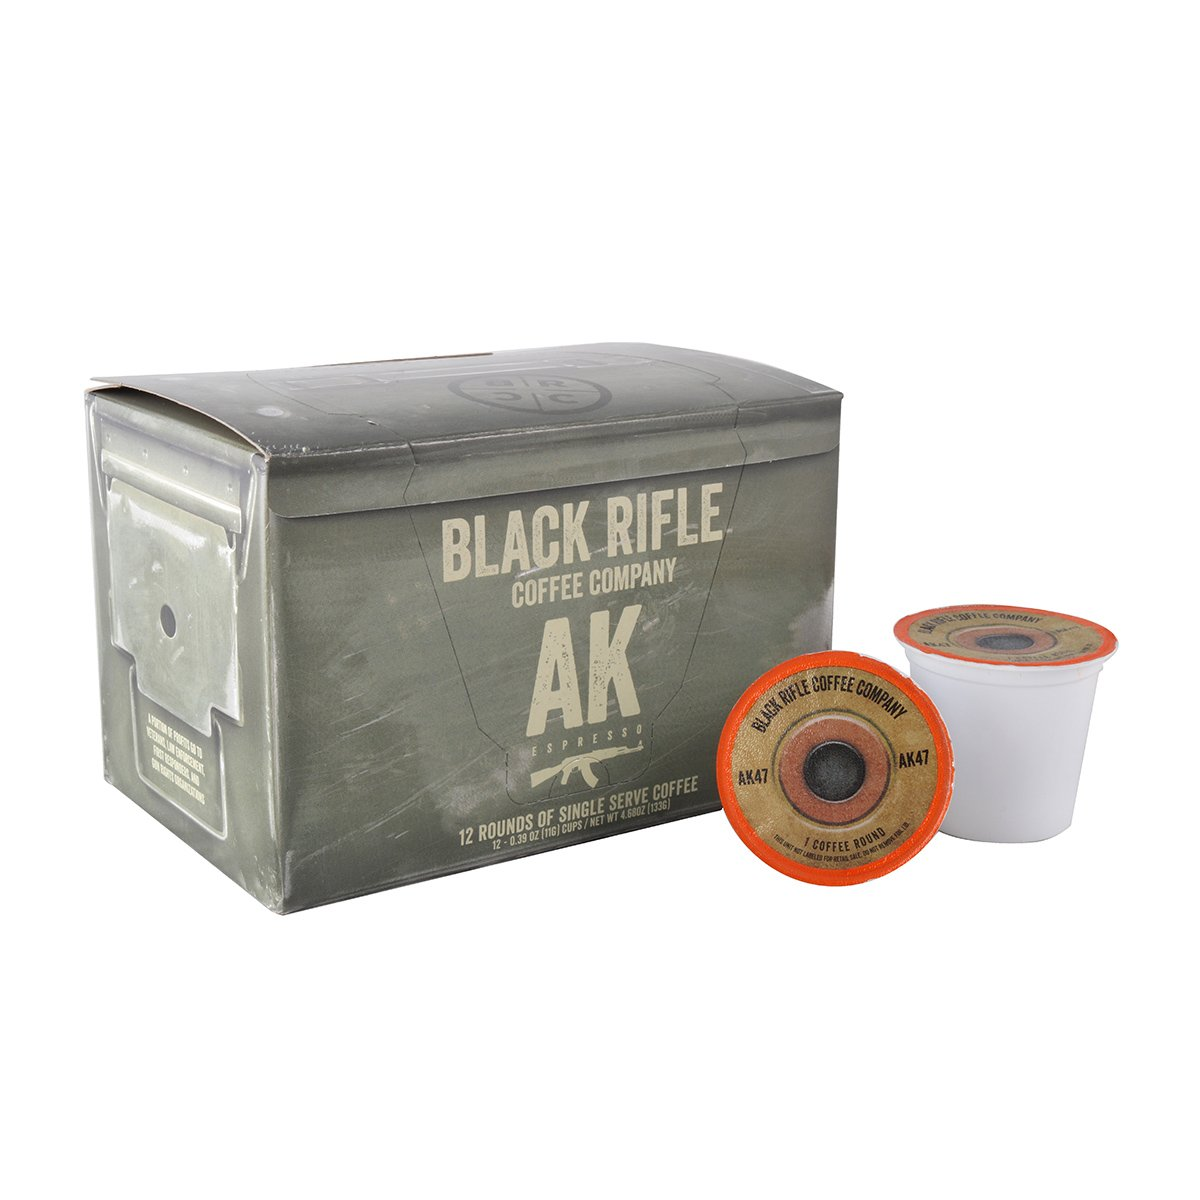 Black Rifle Coffee Company AK-47 Coffee Rounds for Single Serve Brewing Machines (12 Count)